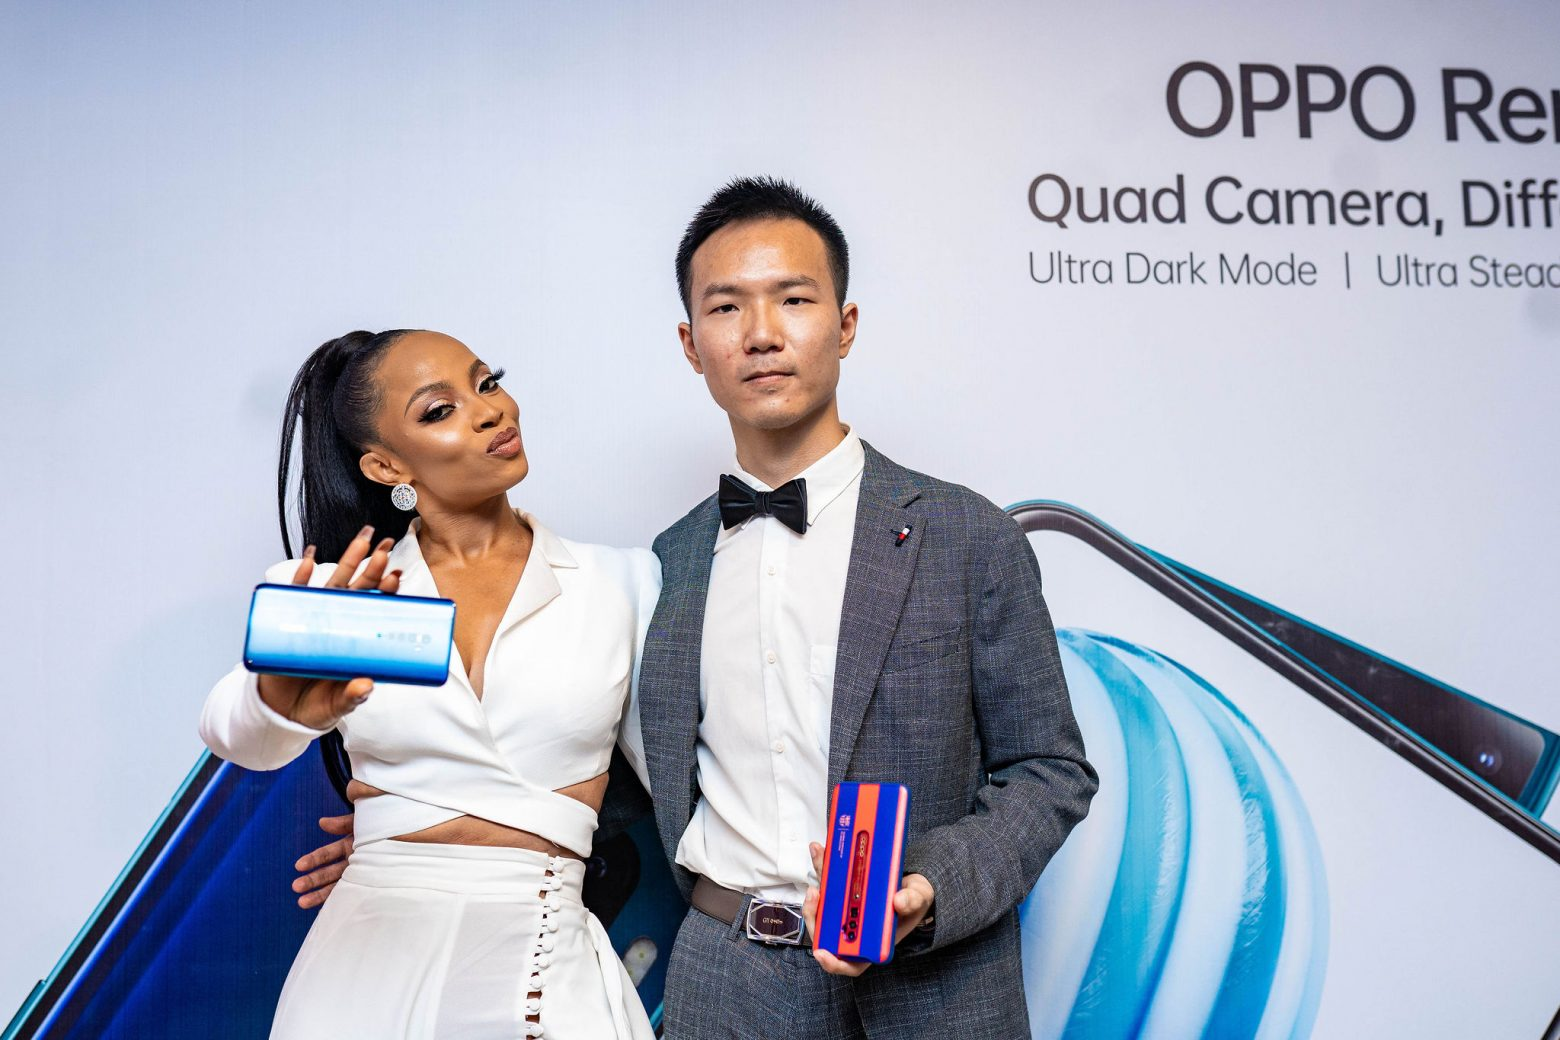 Toke-Makinwa-OPPO-Brand-Influencer-and-Kris-Cao-Marketing-Director-OPPO-Mobile-at-the-launch-event.jpg